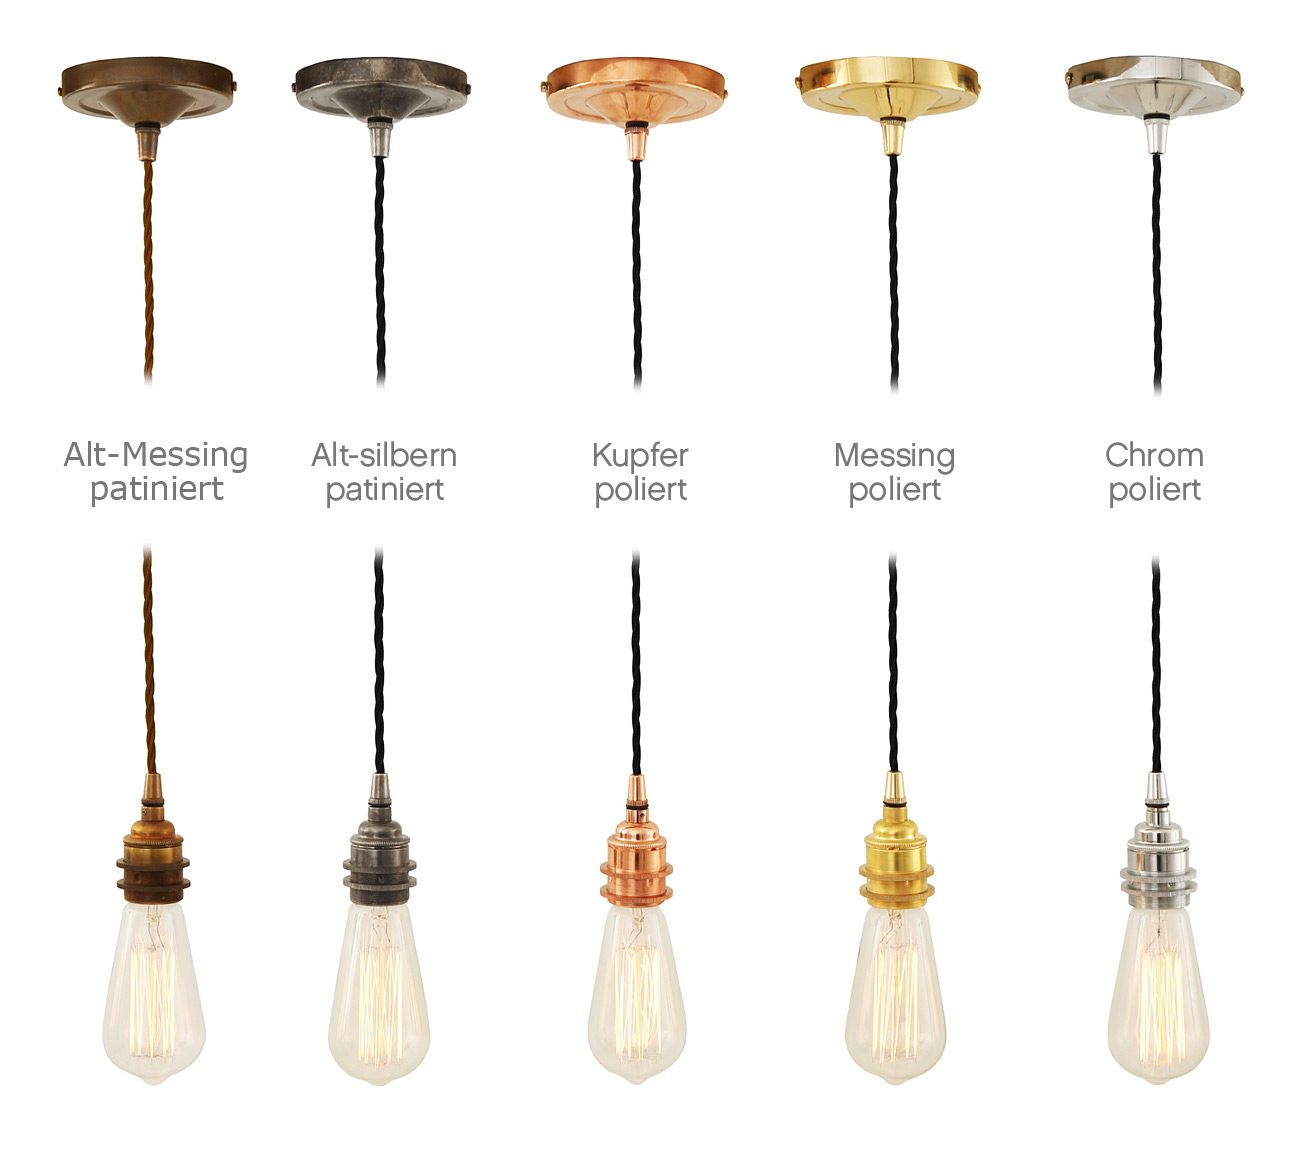 Simple Pendant Light For Use With Edison Bulbs Von Aire Lighting Image 12